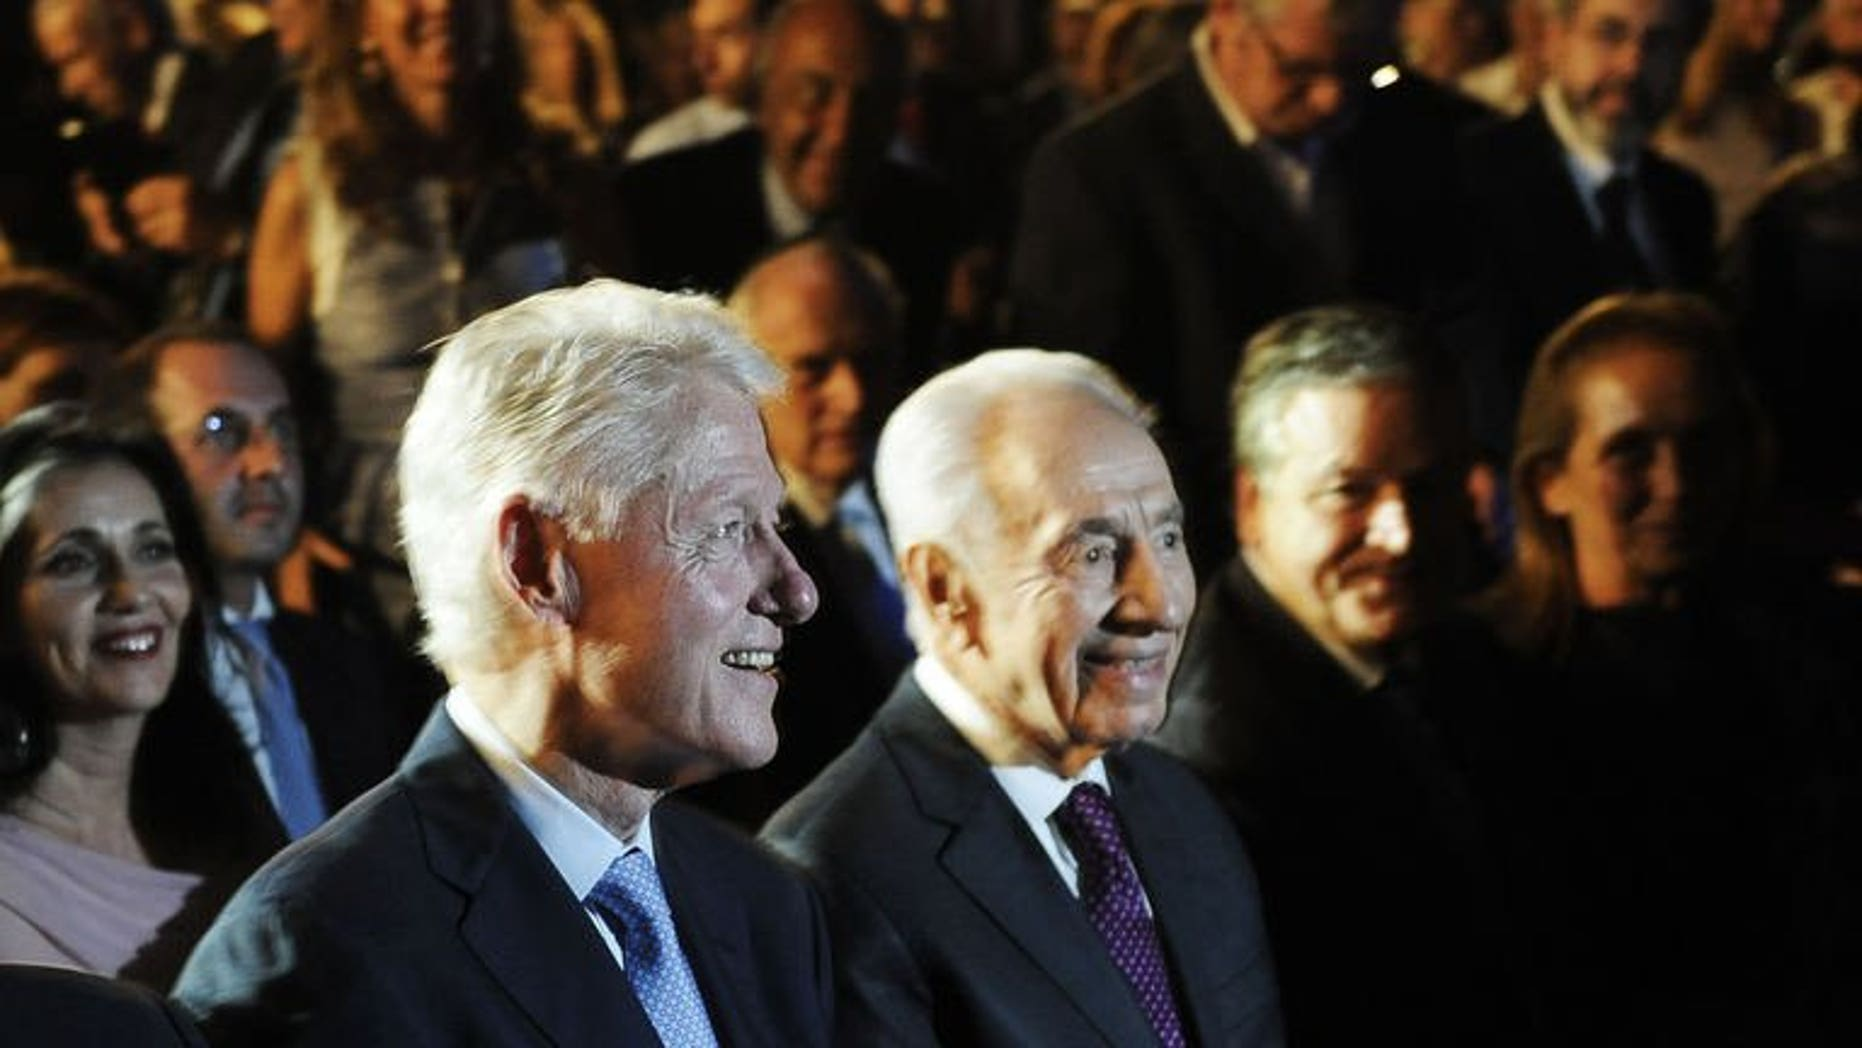 """Former US president Bill Clinton (L) and Israeli President Shimon Peres arrive on June 17, 2013 at the Peres Academic Center (EAC) in Rehovot. Clinton told the crowd at the event celebrating Peres' upcoming 90th birthday that he sees """"no alternative"""" to a Palestinian state."""